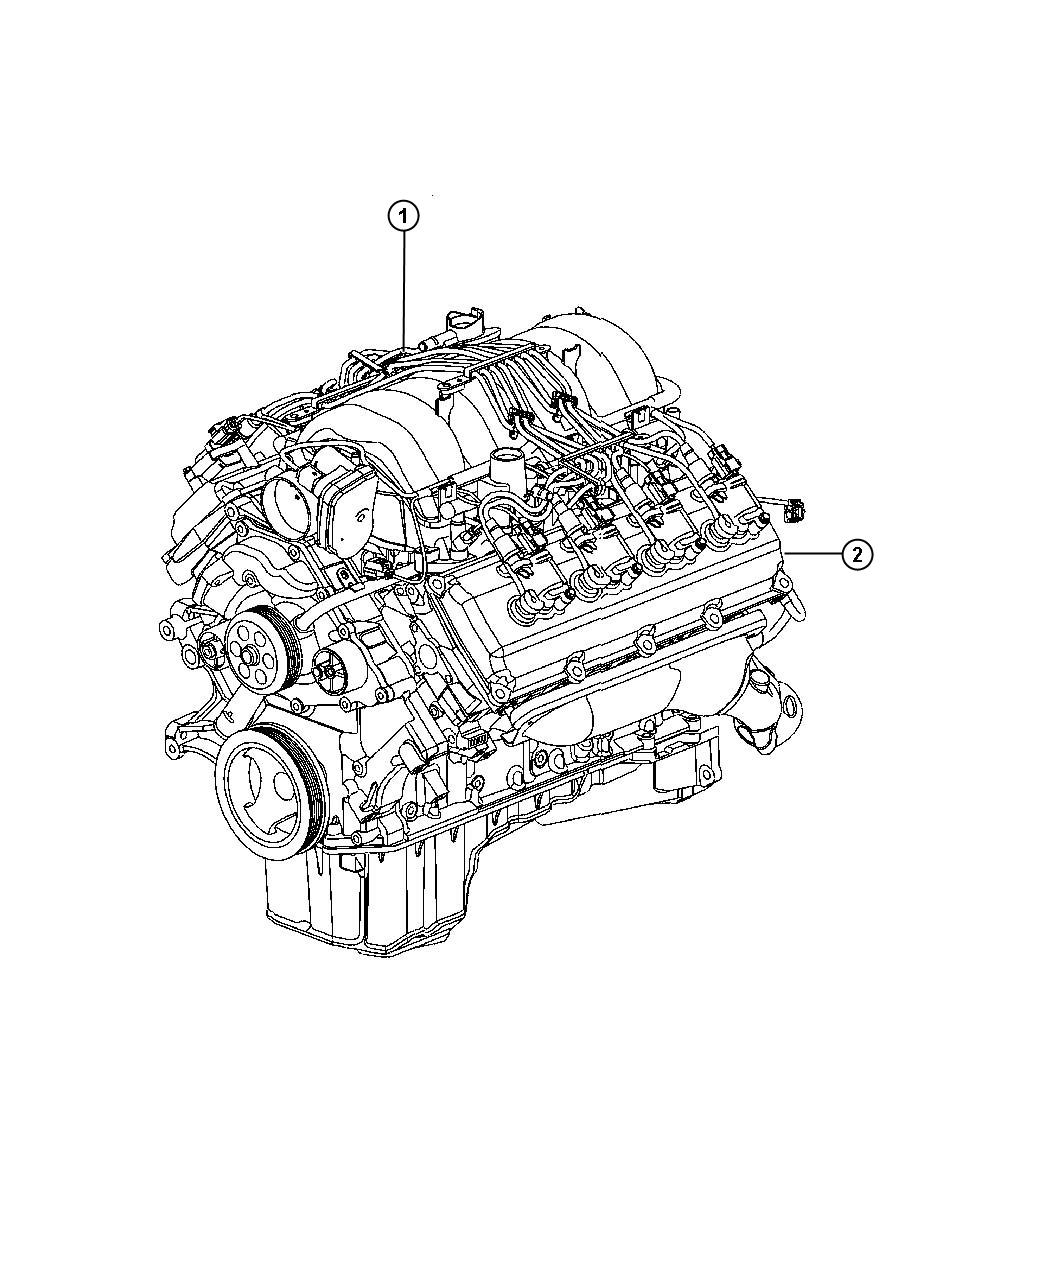 2012 Dodge Ram 2500 Engine. Long block. Remanufactured